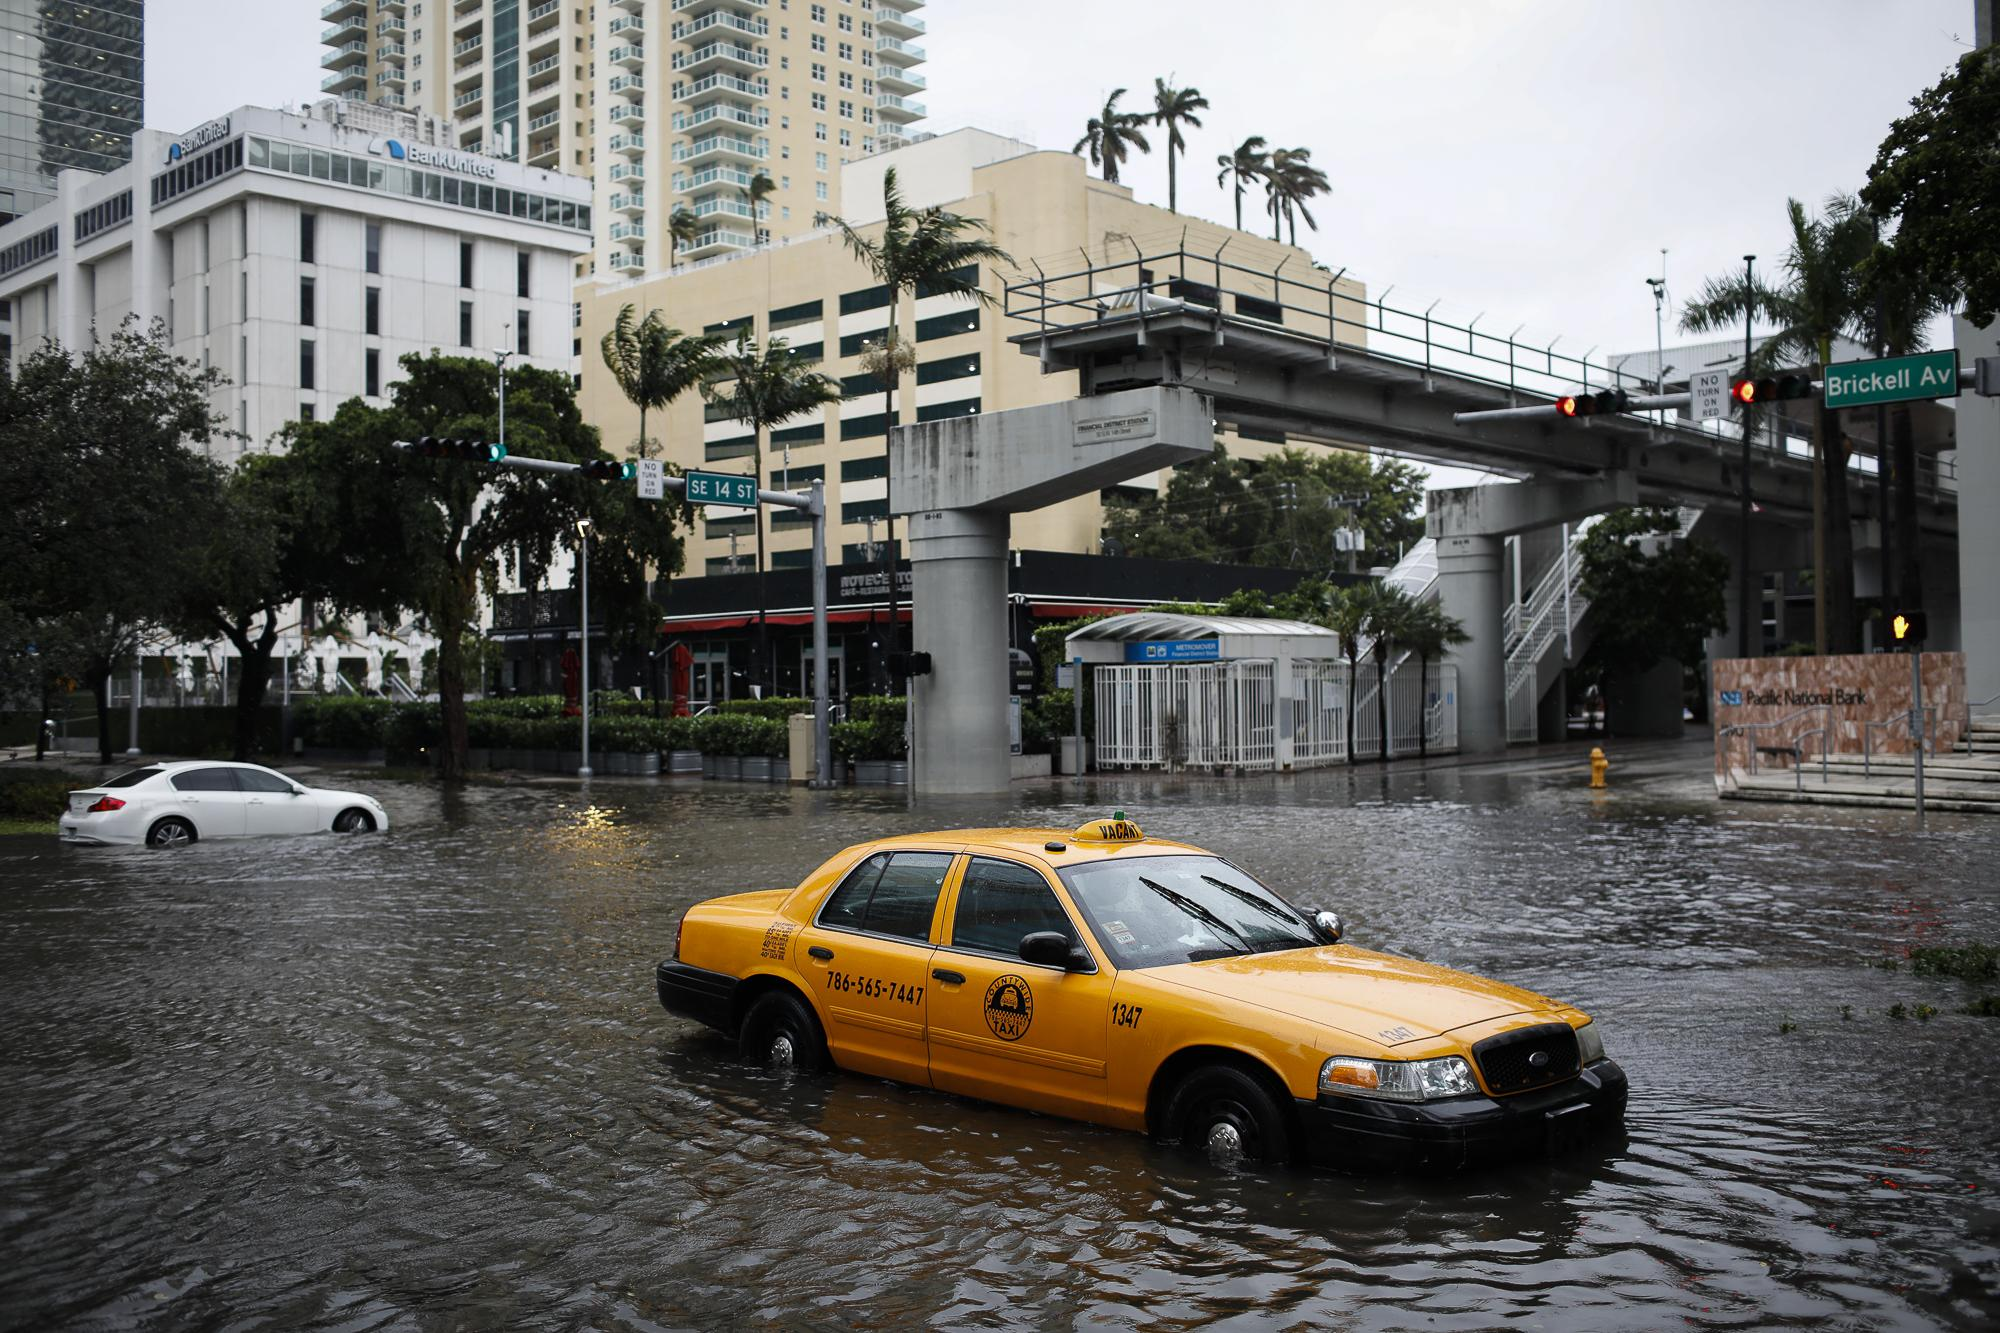 A damaged taxi is seen in floodwaters caused by Storm Eta in a street at the Brickell neighborhood in Miami, Florida, U.S., November 9, 2020. REUTERS/Marco Bello